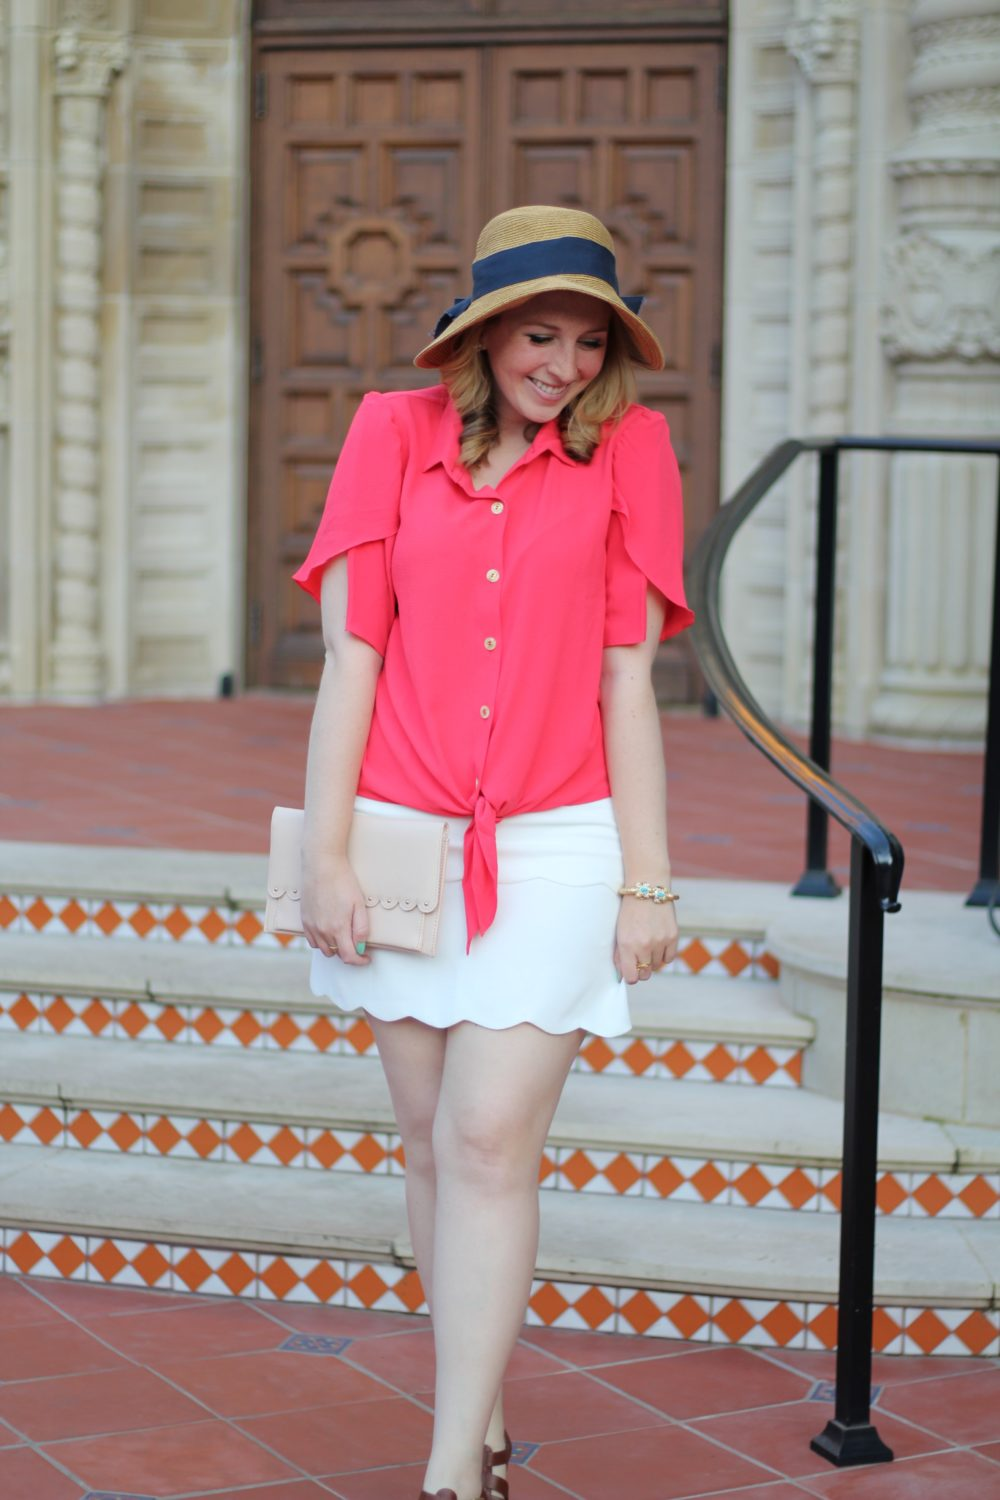 Red Tulip-Sleeve Blouse Rent the Runway unlimited shirt top tie bow, club monaco skirt white scallop trim, tuckernuck bow hat